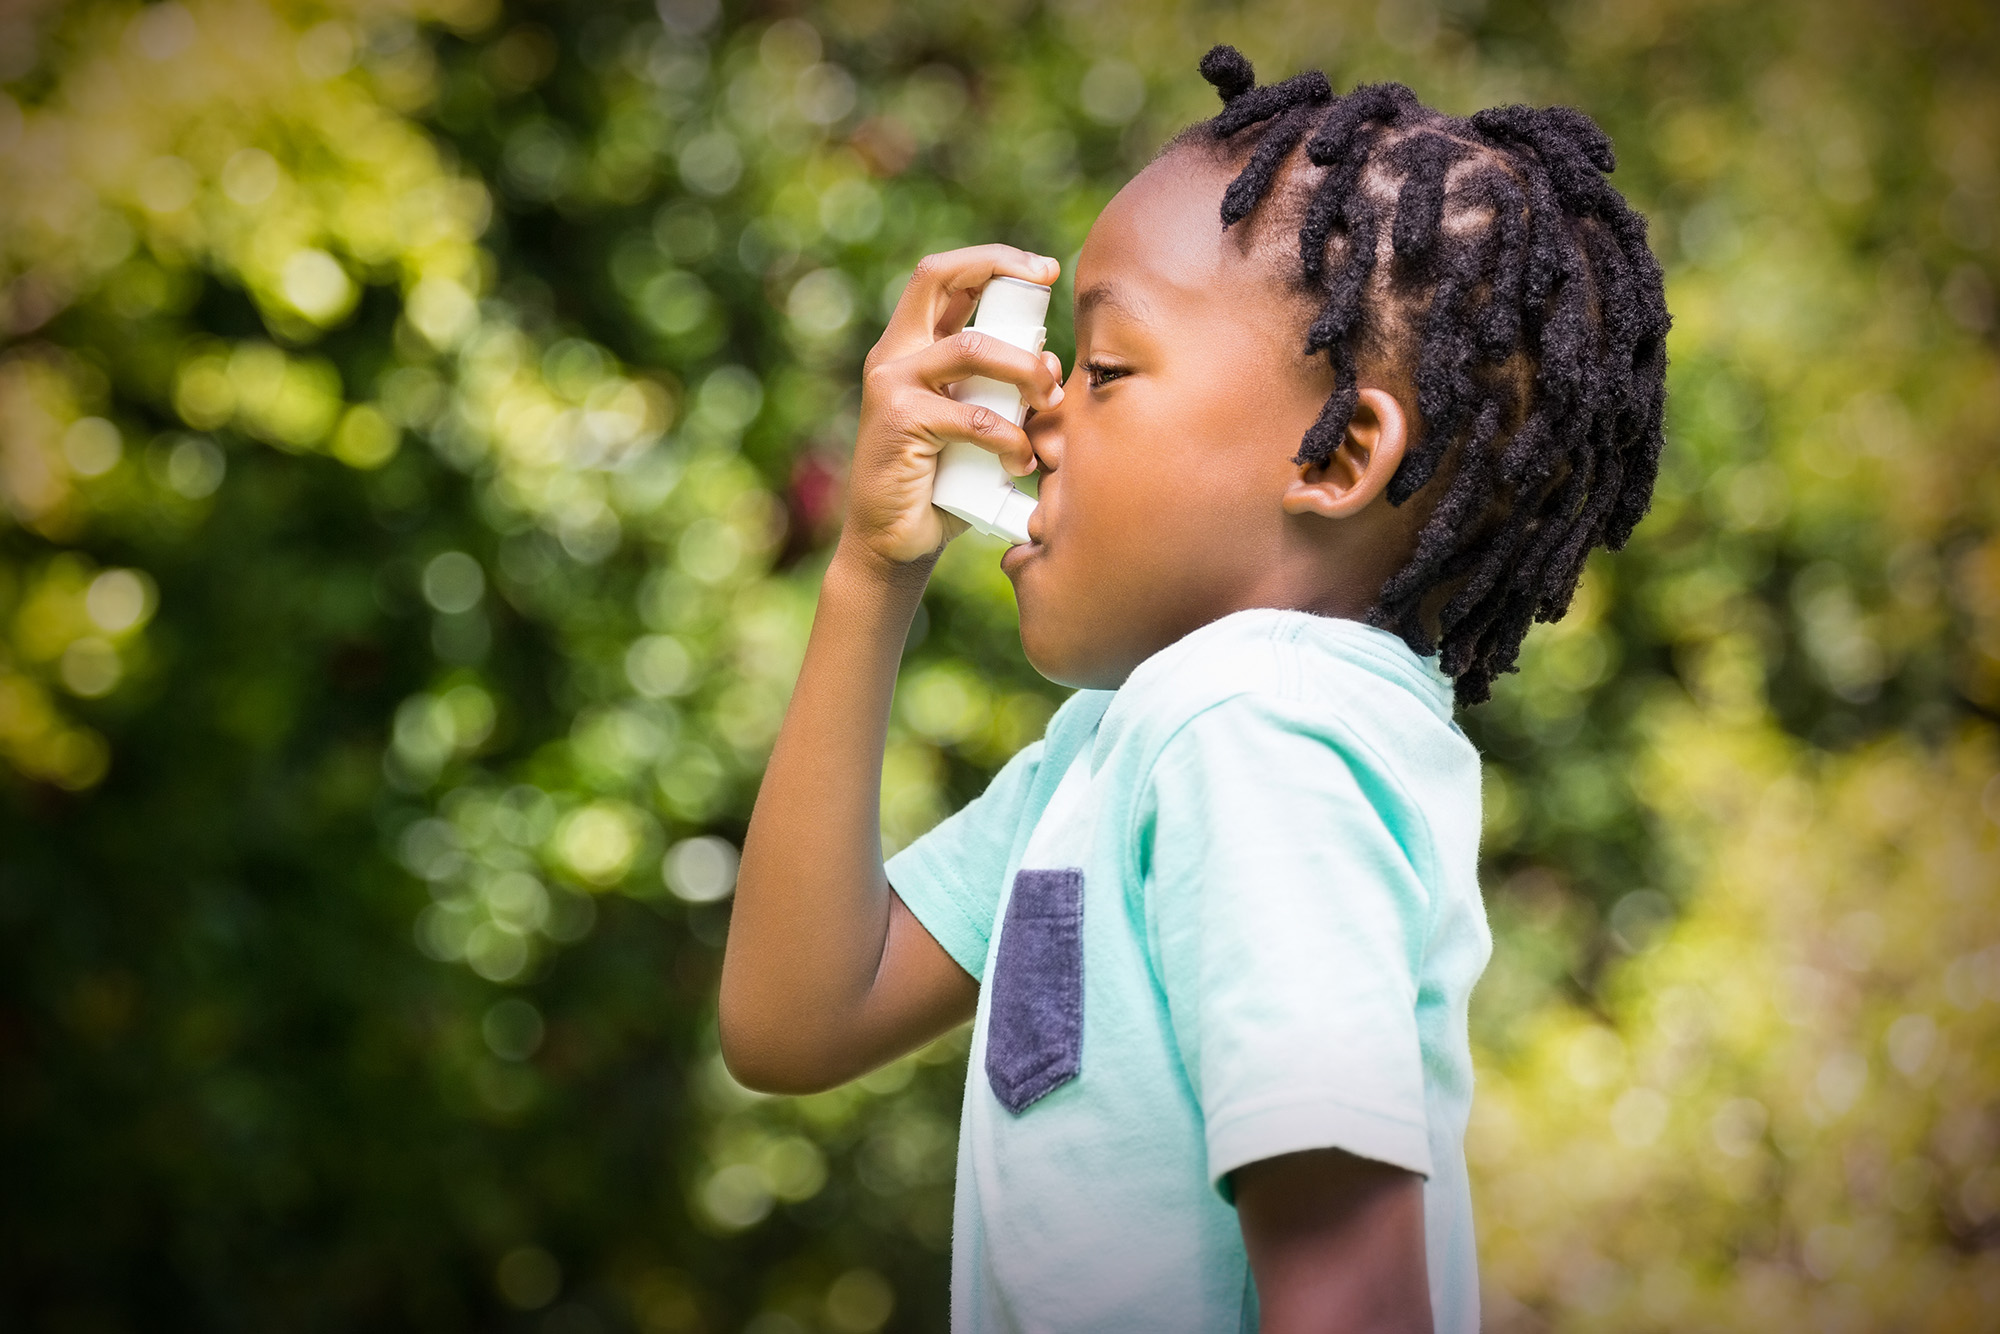 A photo of a child taking medication at school